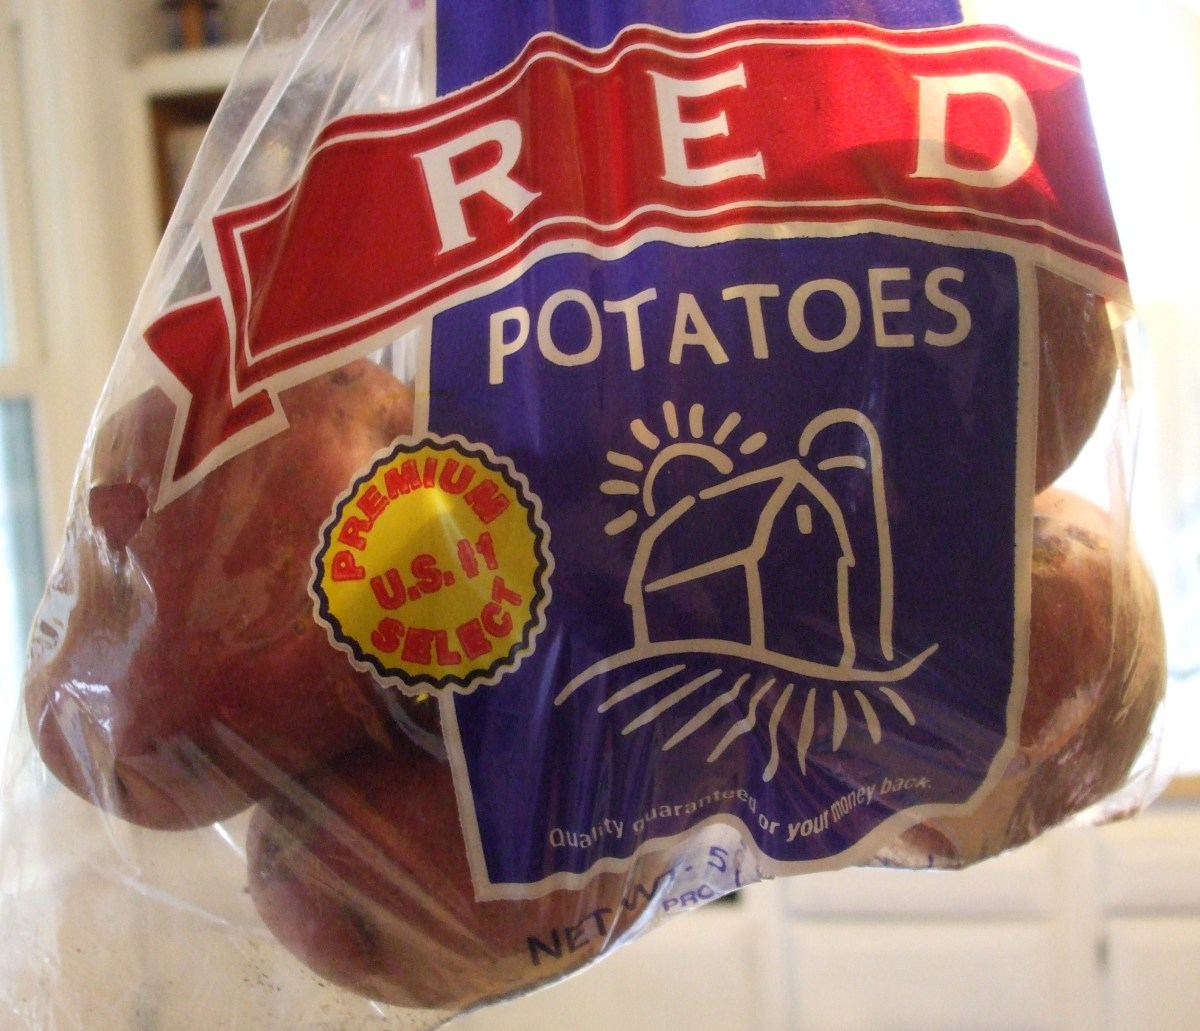 A bag of red potatoes.